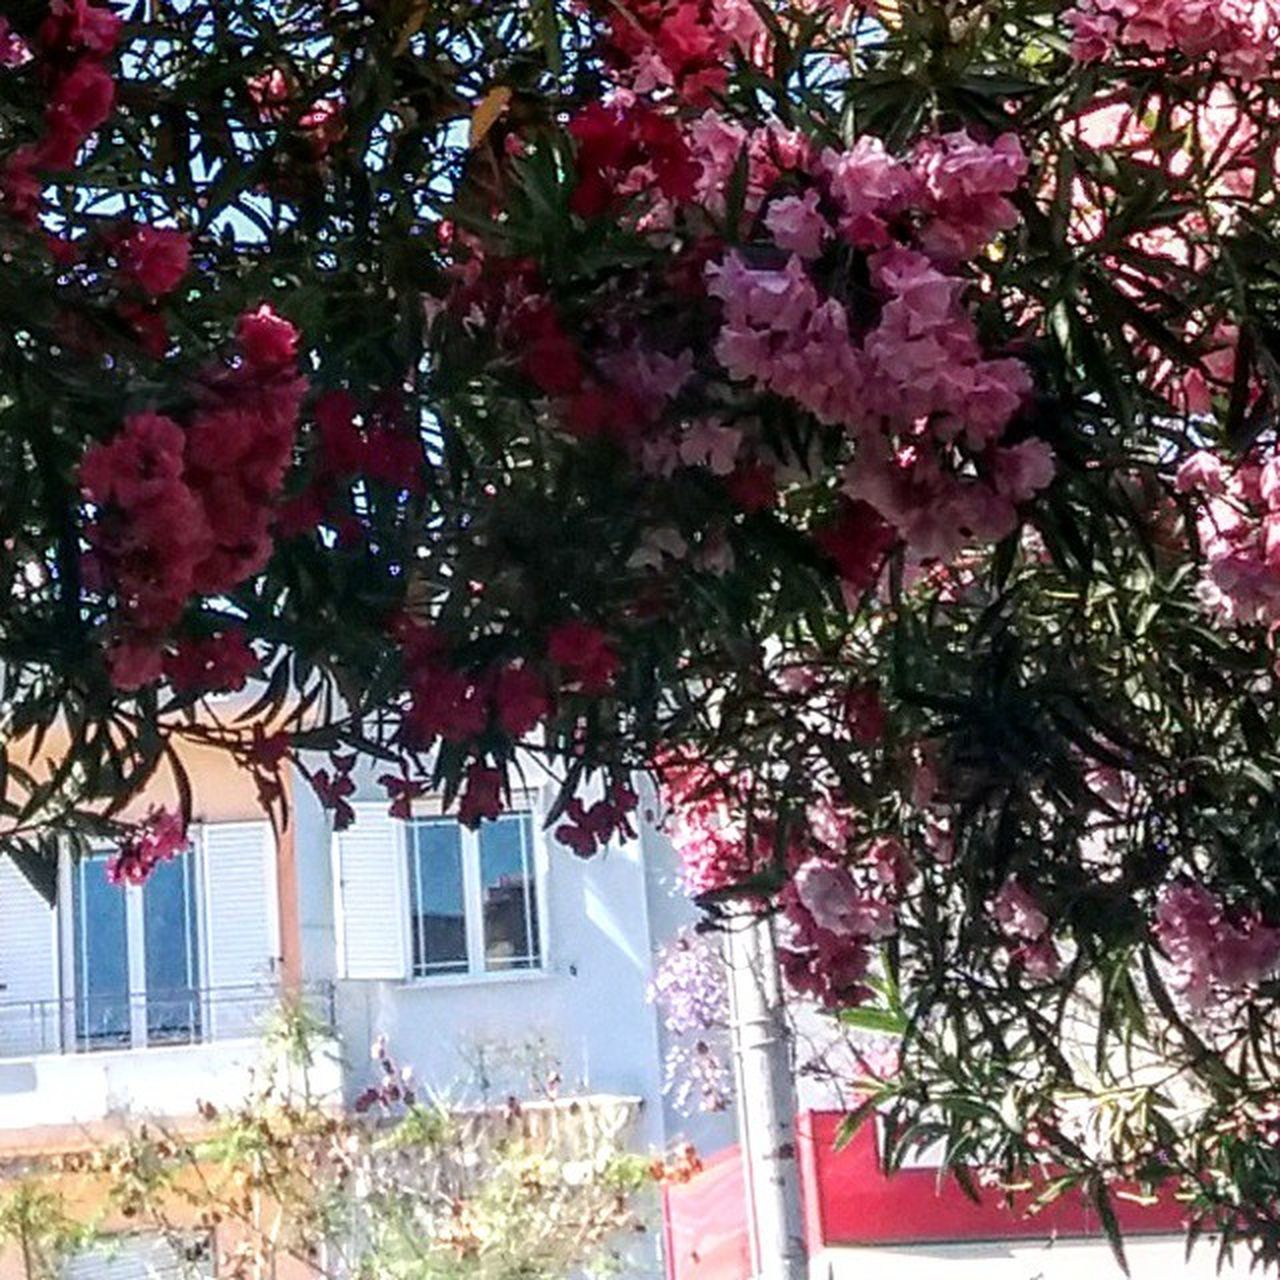 tree, growth, building exterior, architecture, built structure, day, no people, outdoors, plant, branch, nature, flower, beauty in nature, freshness